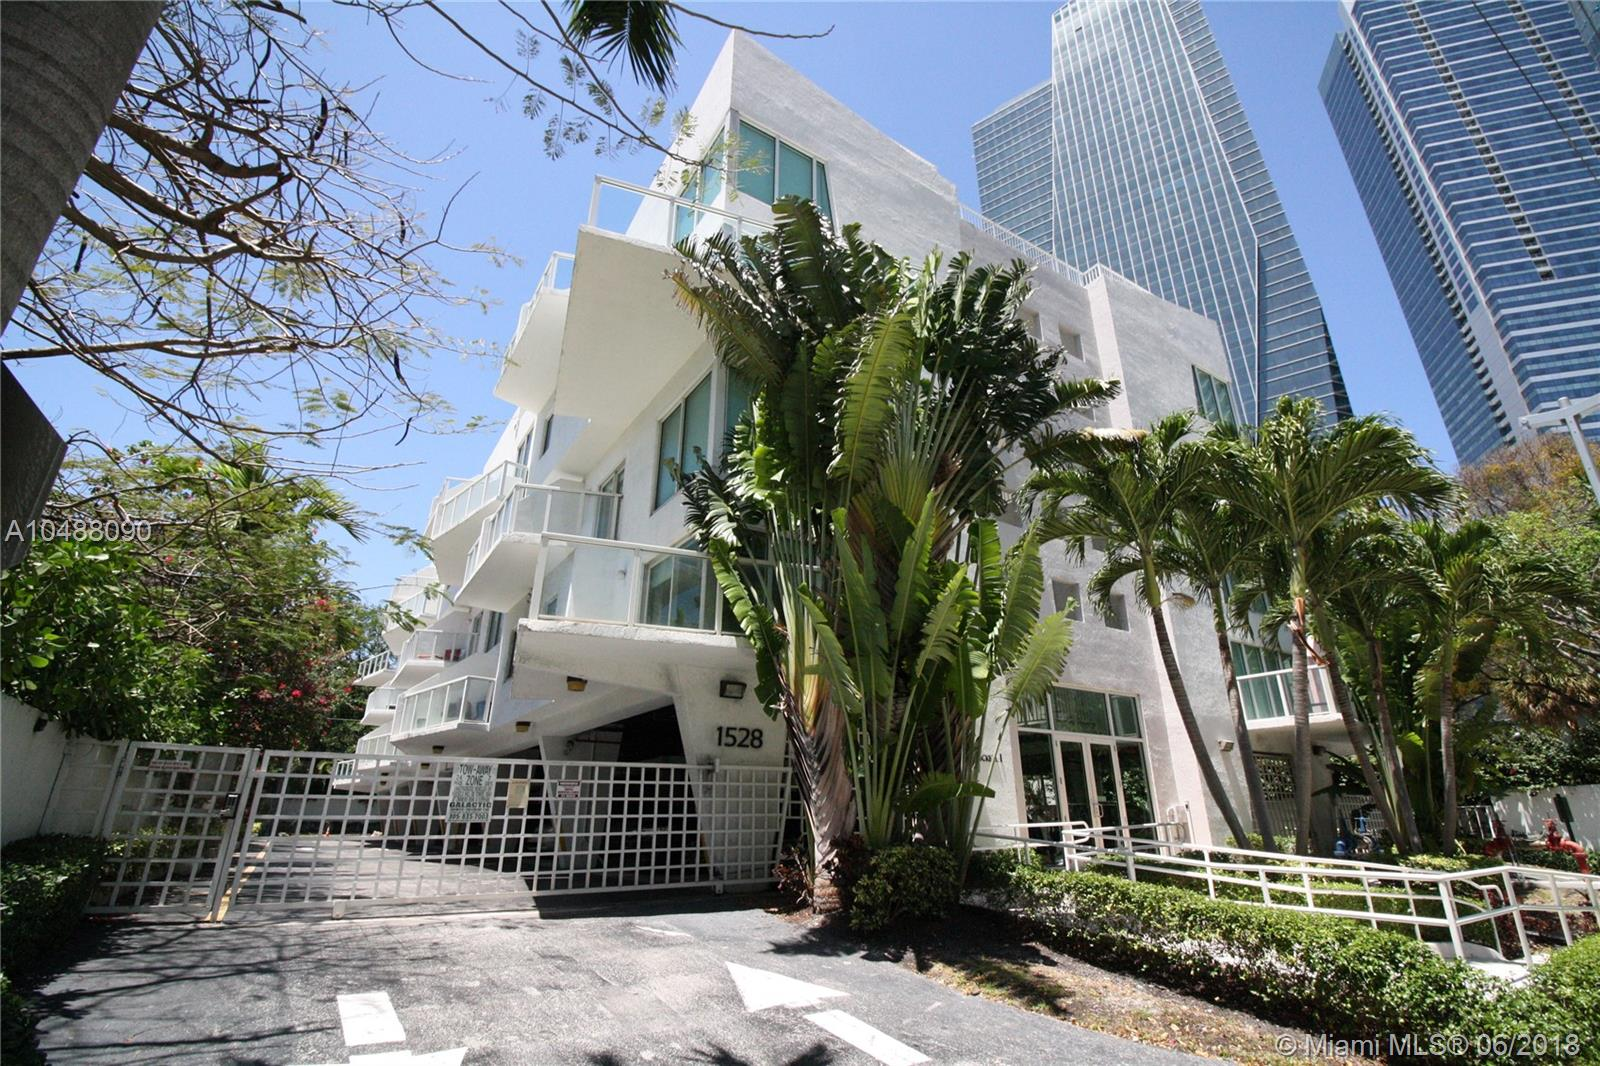 Two Story Loft In A Boutique Condo Located In The Brickell Area. Unit Offers Lots Of Natural Lights, Double High Ceilings And Stainless Steel Appliances. Washer And Dryer Inside The Unit. Secured Gated Condo With Covered Parking Space Assigned. Walking Distance To Brickell+Ógé¼Gäós Financial District, Restaurants, Shops, Pharmacies, Supermarkets, Etc. Easy Access To Downtown, Key Biscayne, Coconut Grove, Coral Gables, & Miami International Airport.